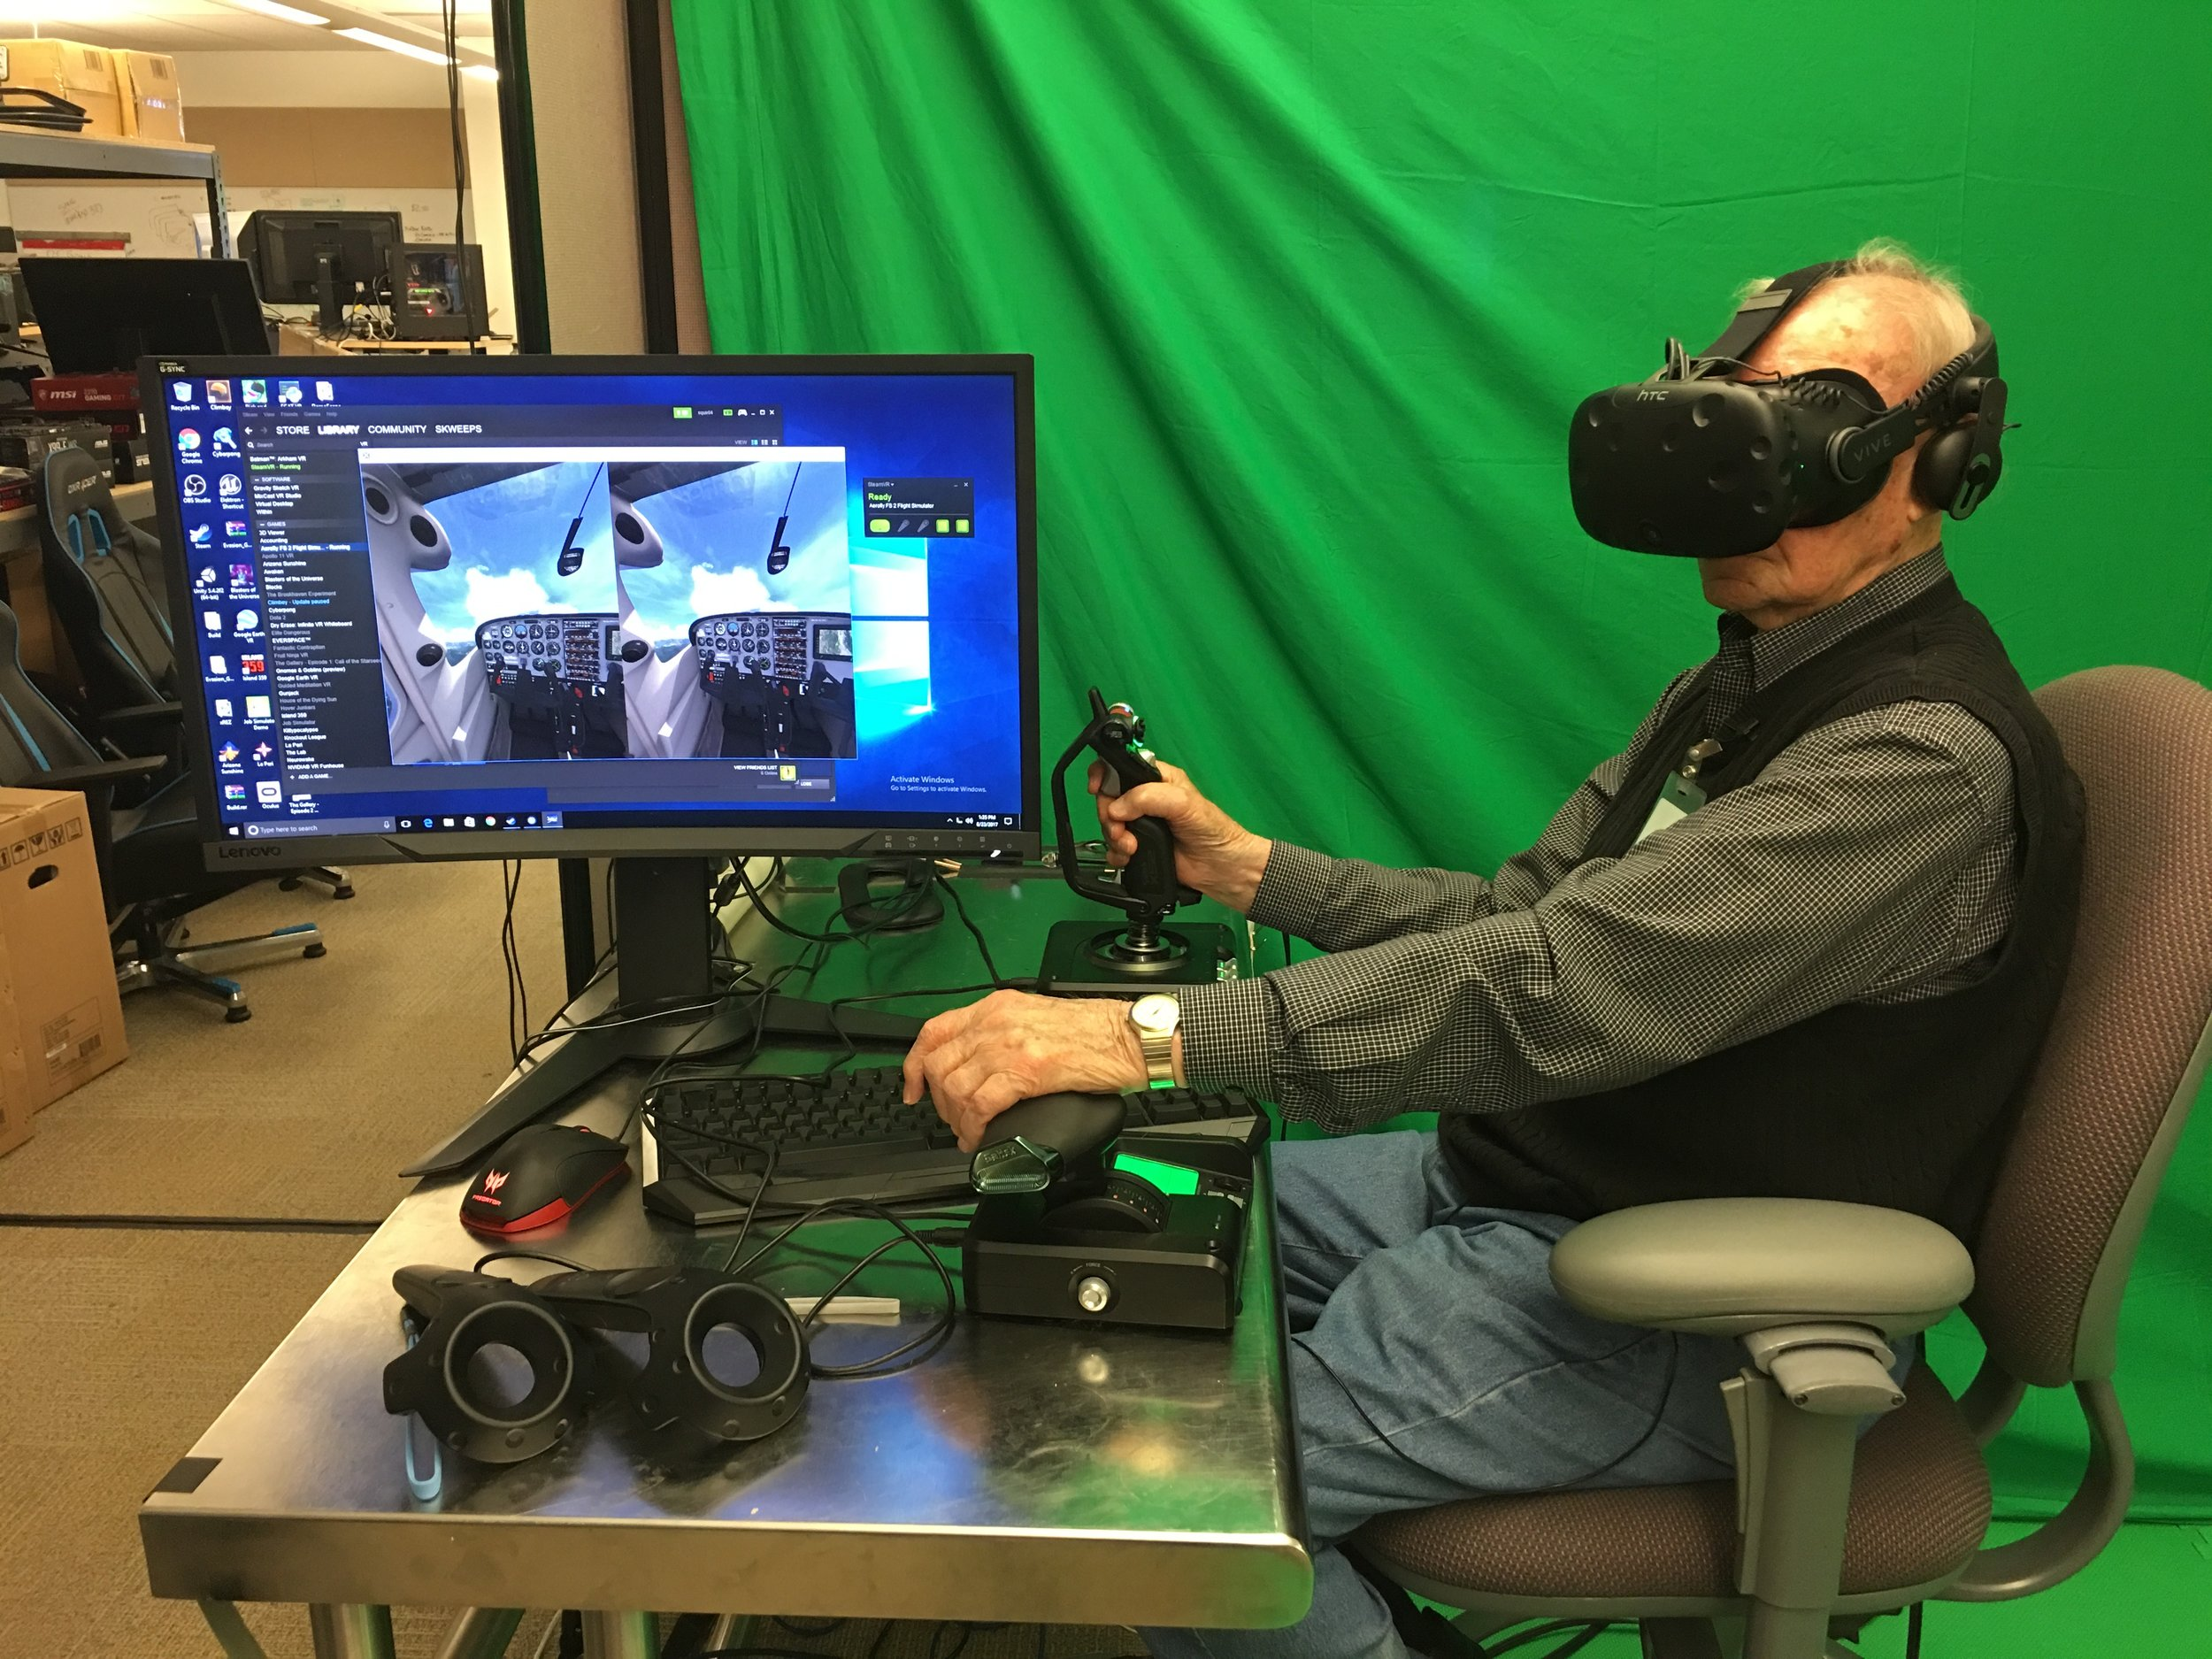 Lyle showing us how it's done as he flies around inside the virtual world created by AeroFly FS2.